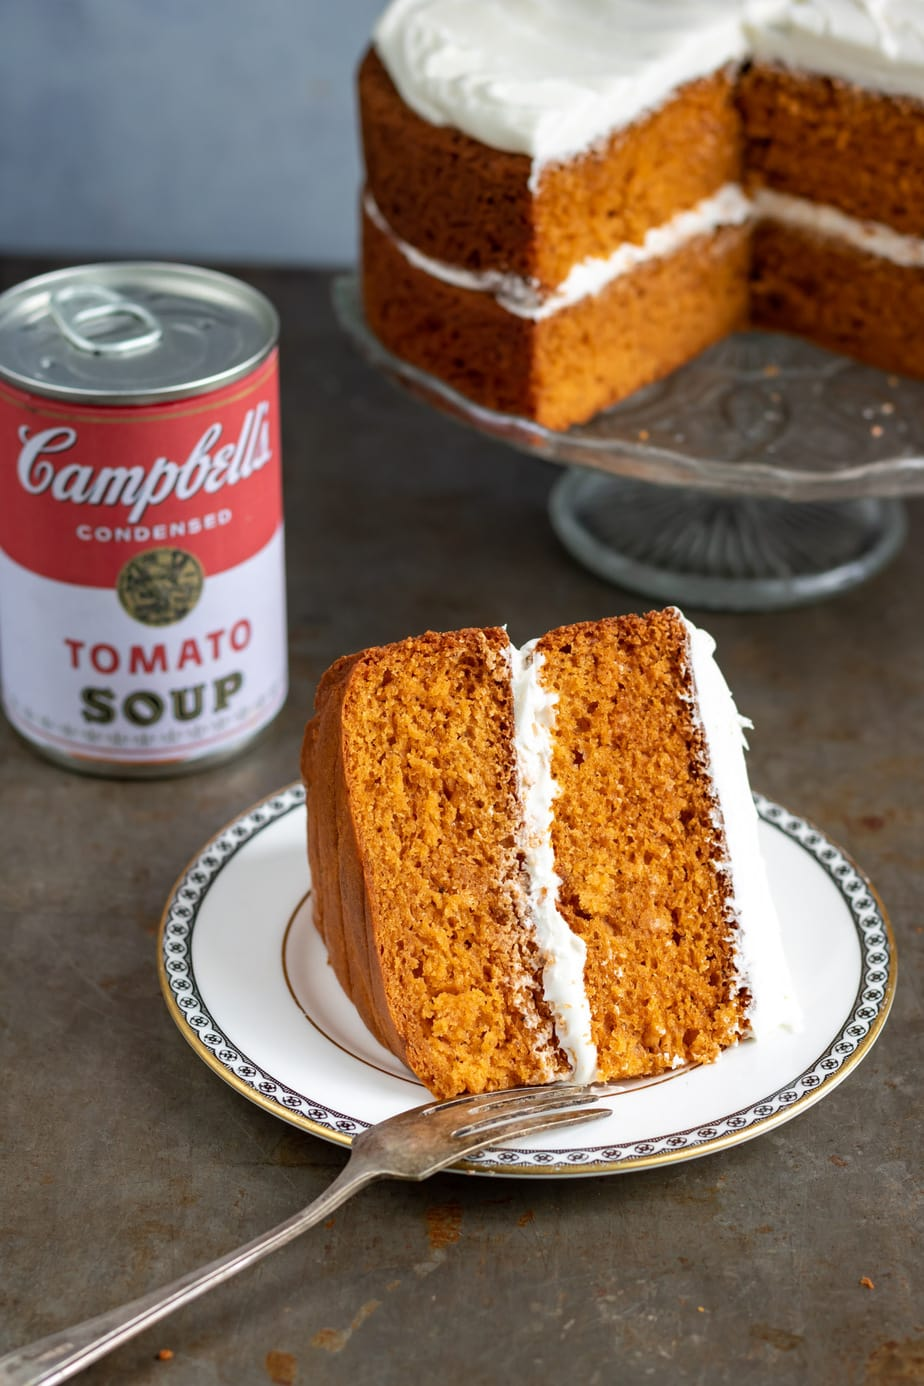 Slice of cake next to can of tomato soup.